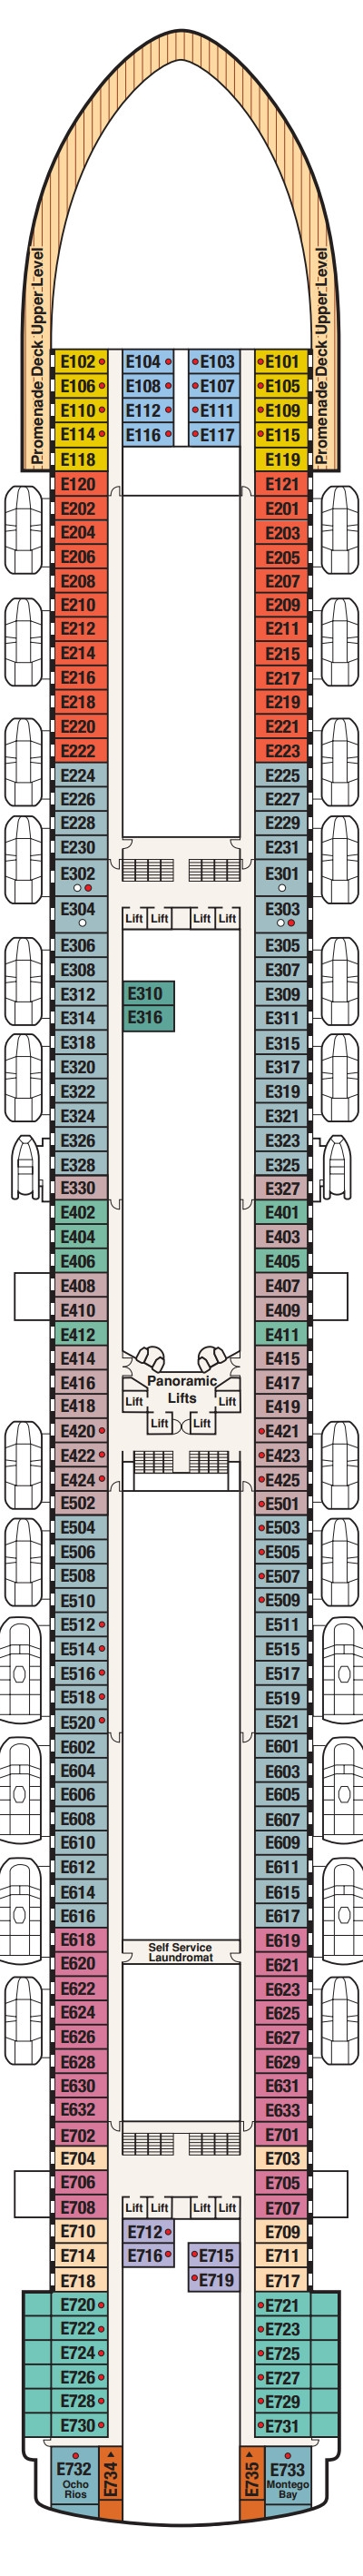 Crown Princess Emerald Deck 8 layout